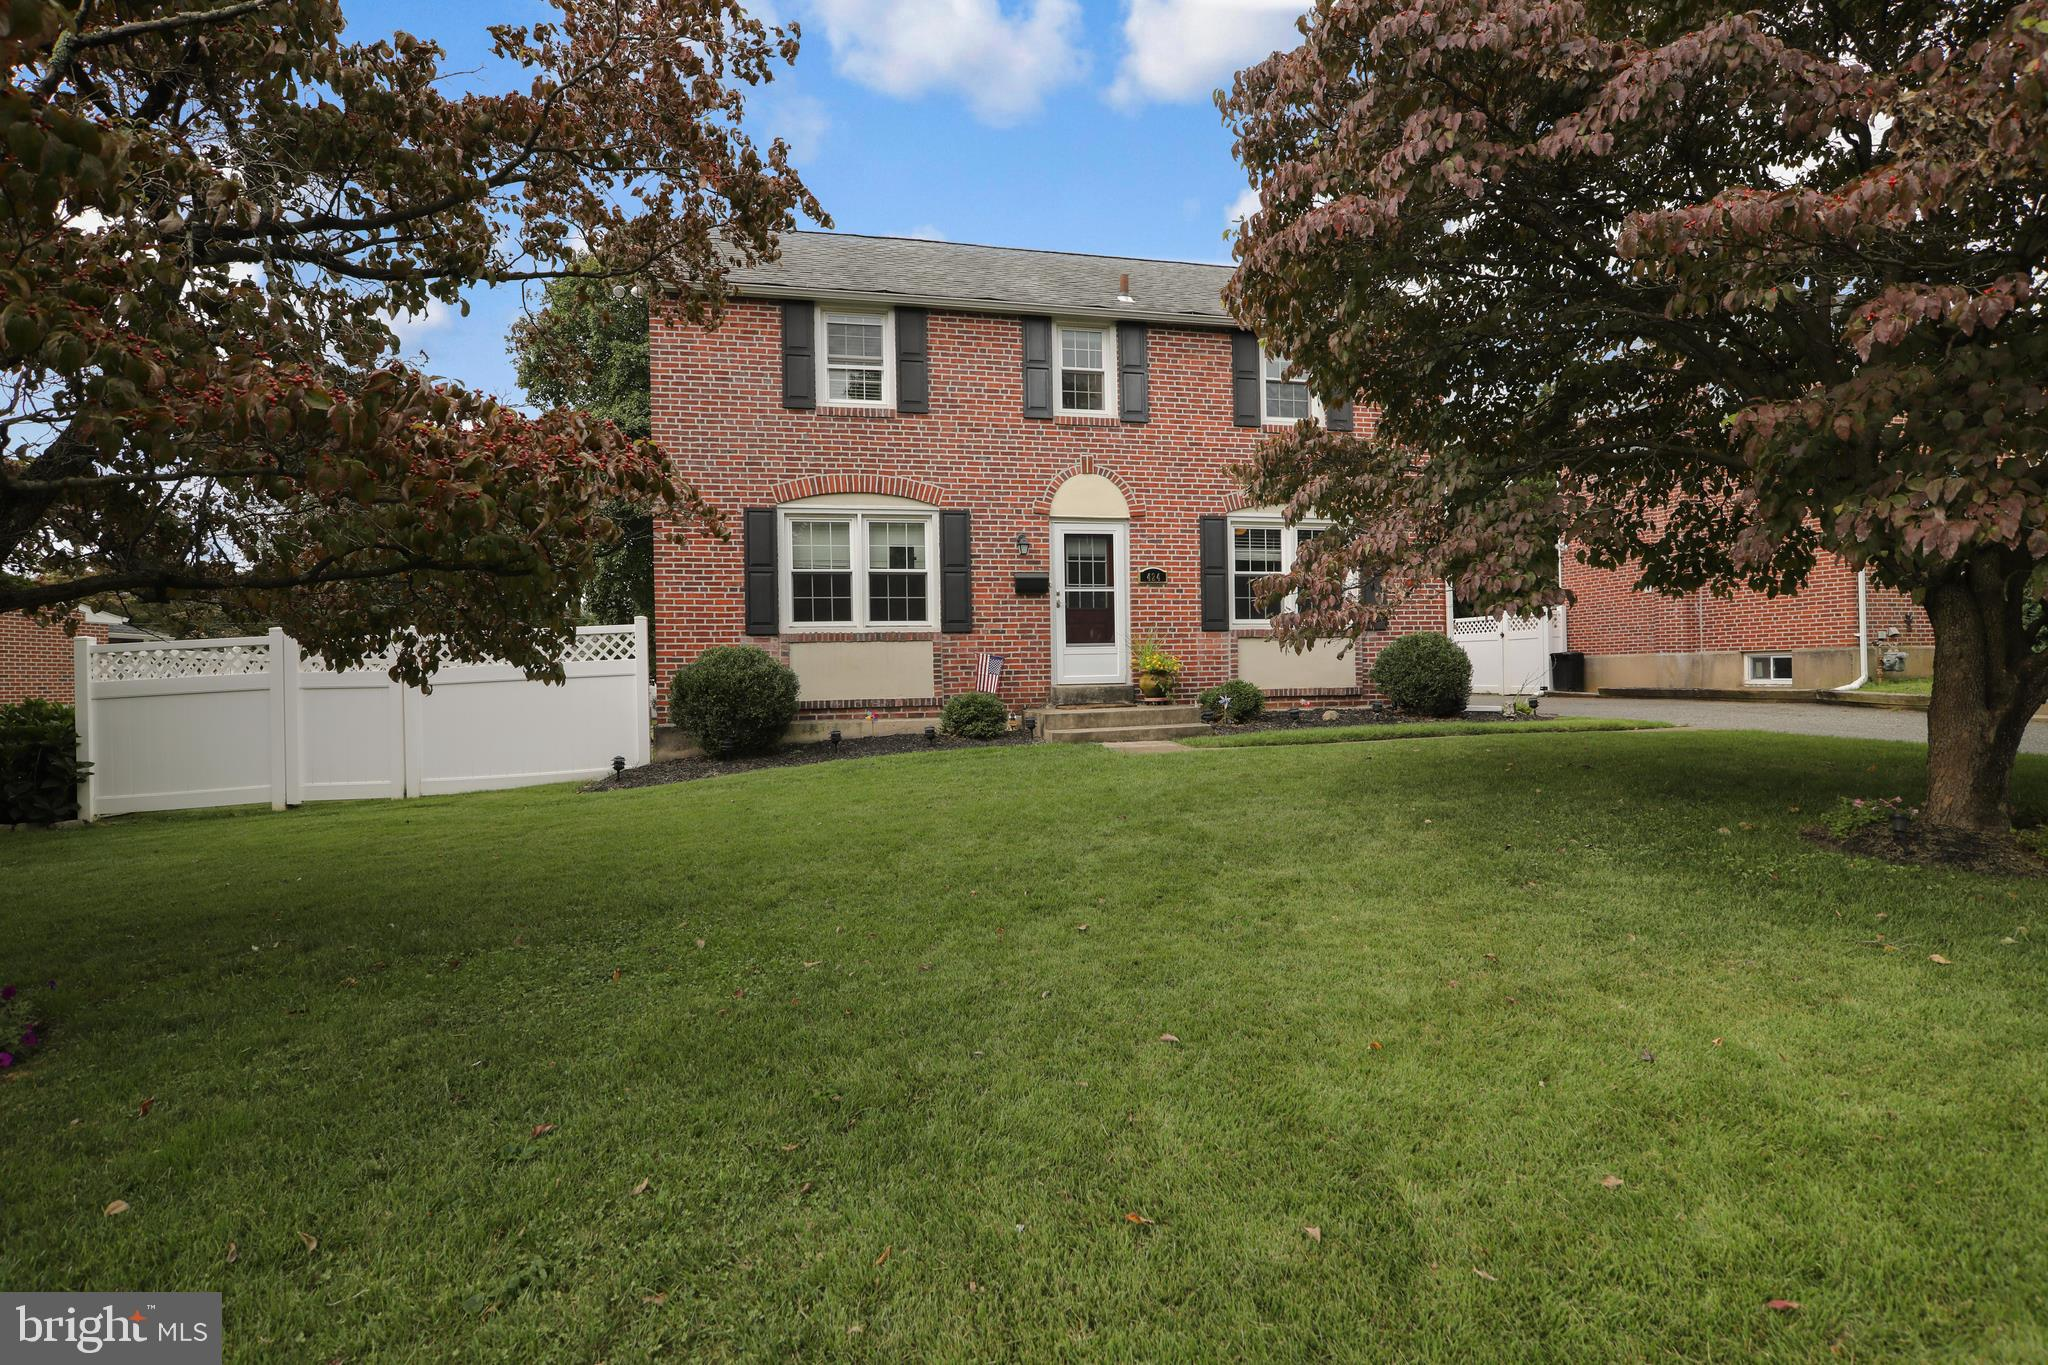 424 COLONIAL PARK DRIVE, SPRINGFIELD, PA 19064